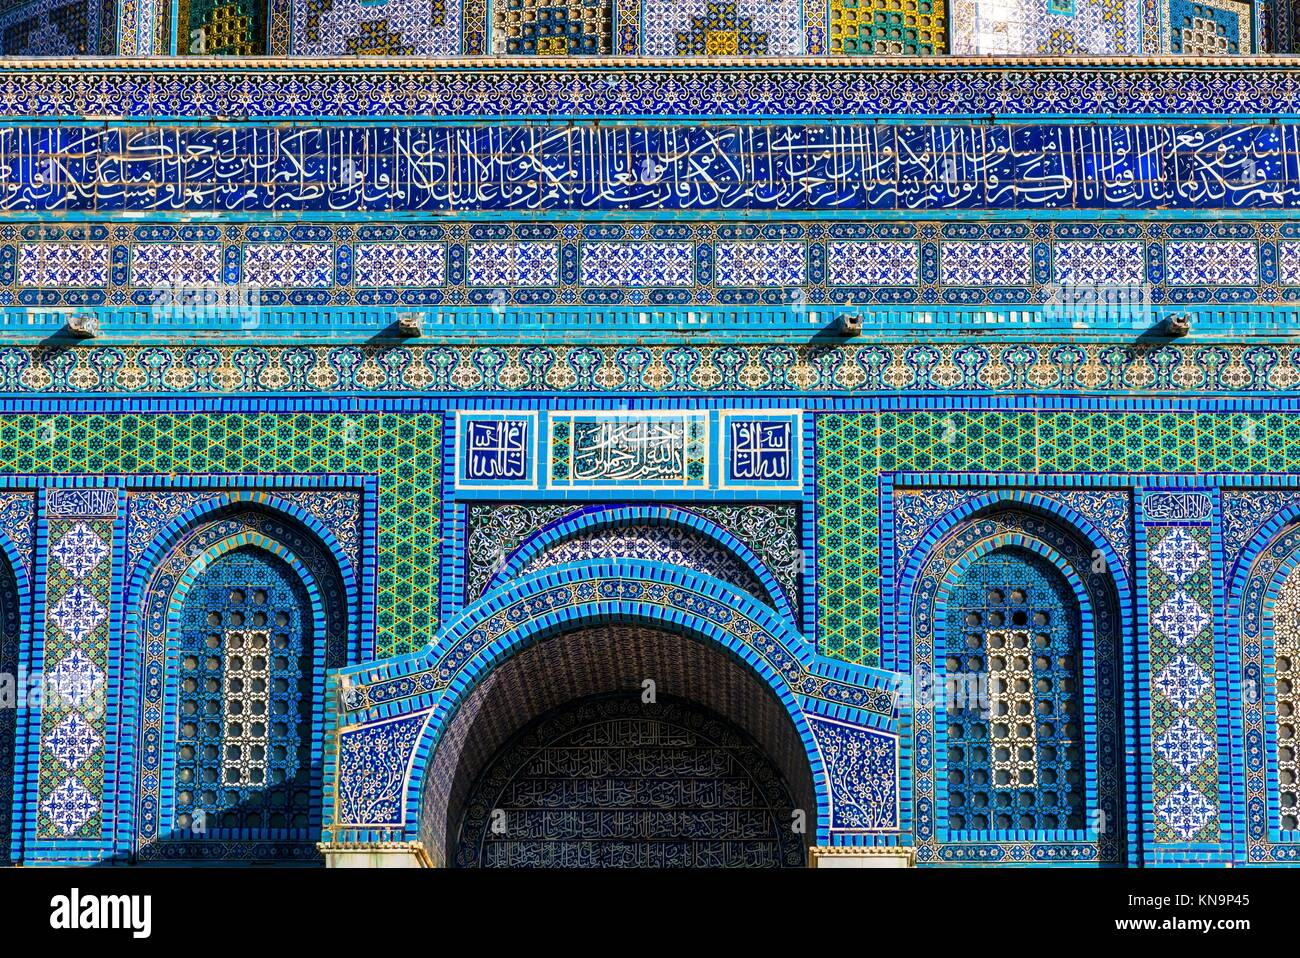 Dome of the Rock Islamic Decorations Mosque Temple Mount Jerusalem Israel. Built in 691 One of most sacred spots - Stock Image